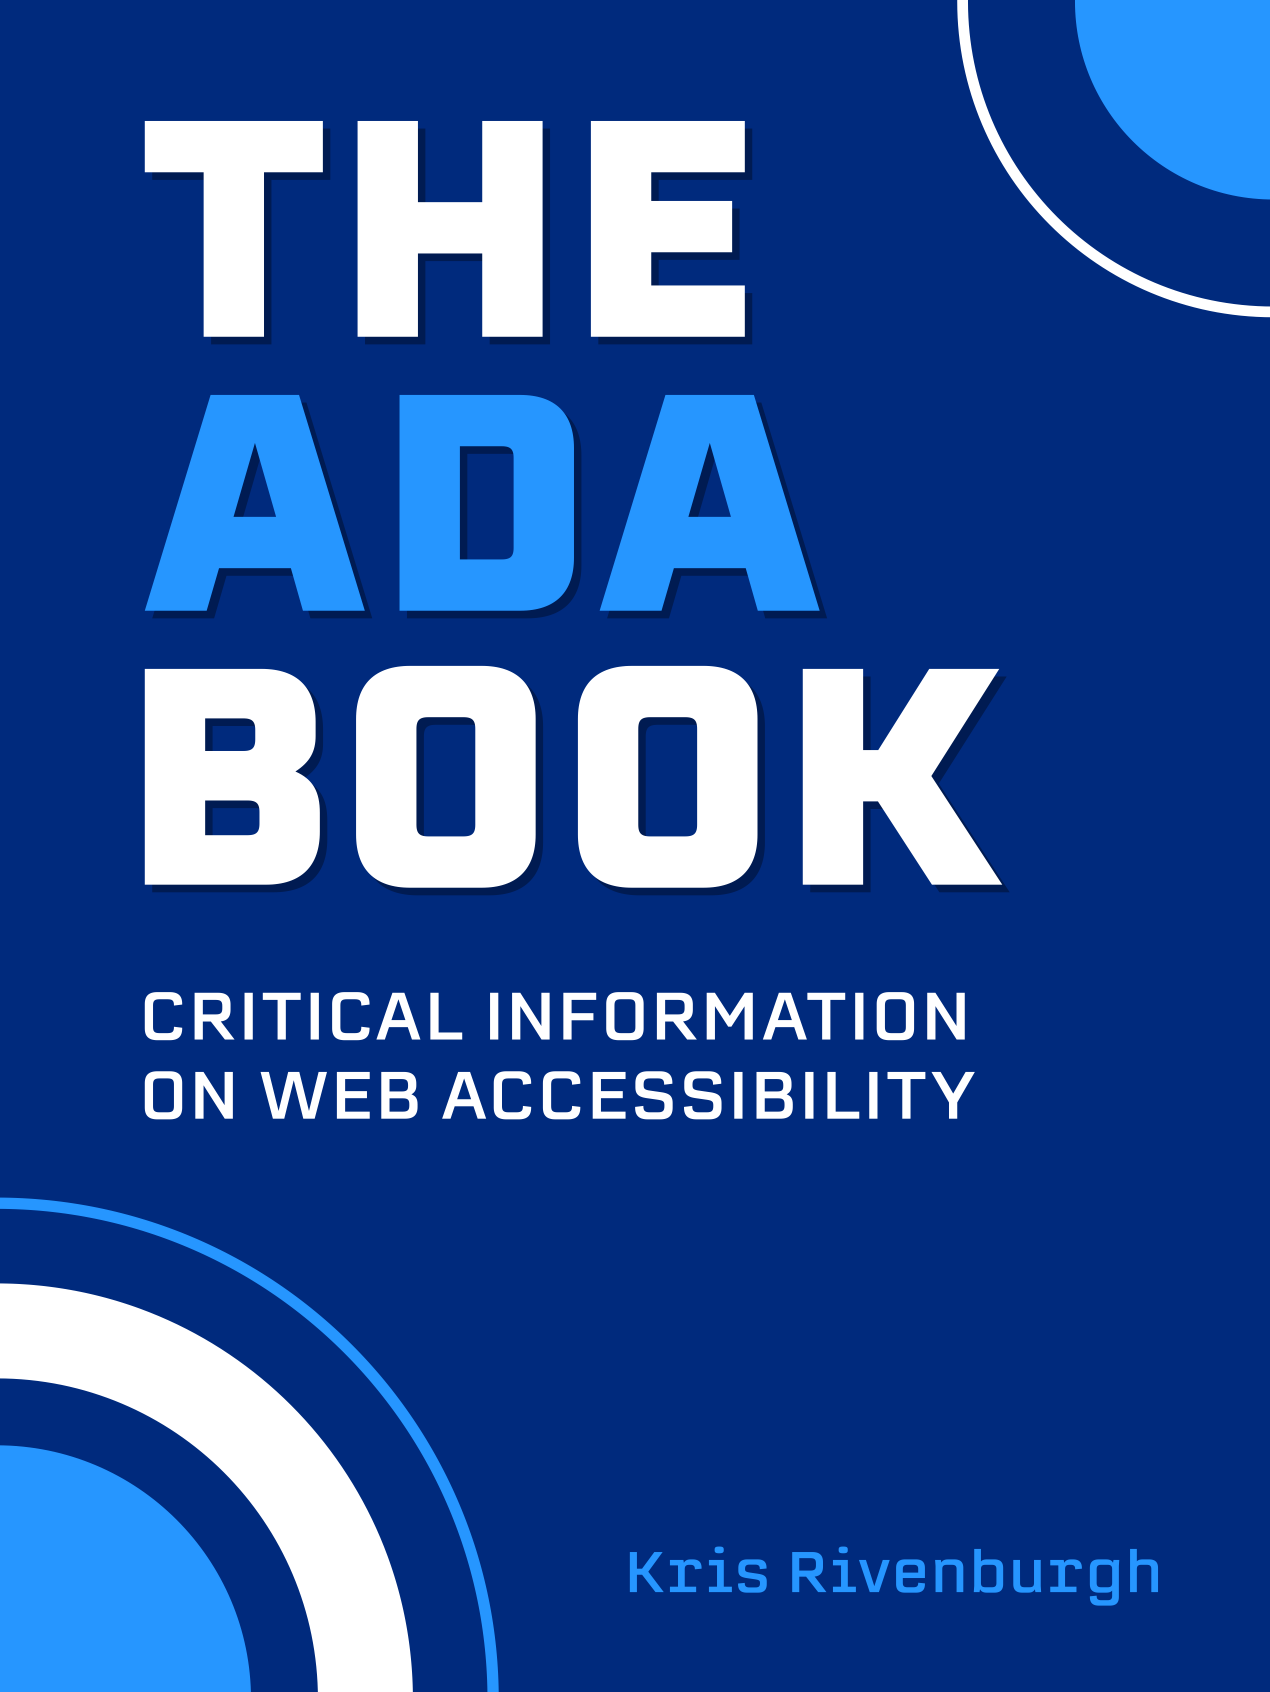 """Cover of The ADA Book. Subtext is """"Critical Information on Web Accessibility"""" and author is Kris Rivenburgh. Dark blue cover."""